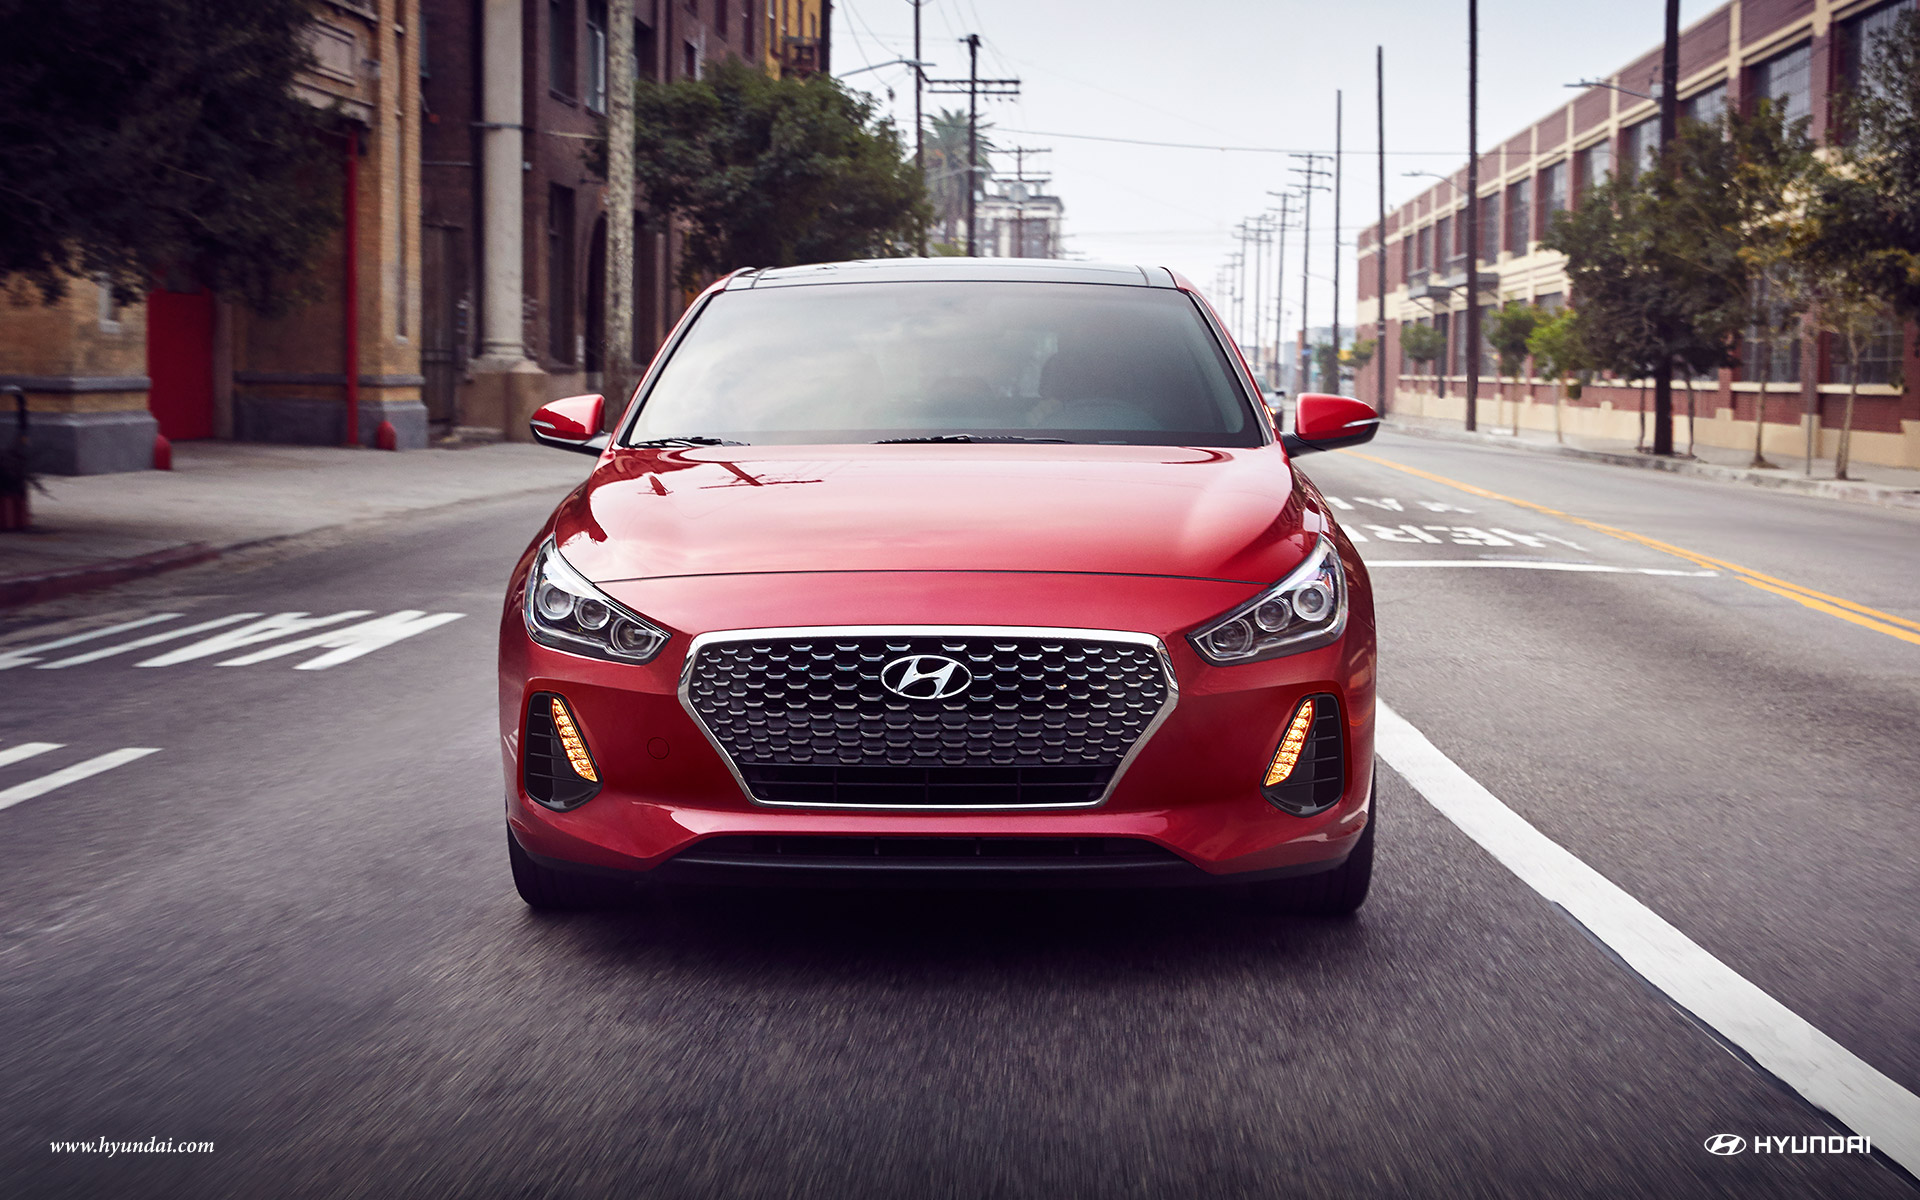 2018 Hyundai Elantra GT Scarlet Red Pearl Exterior Front View